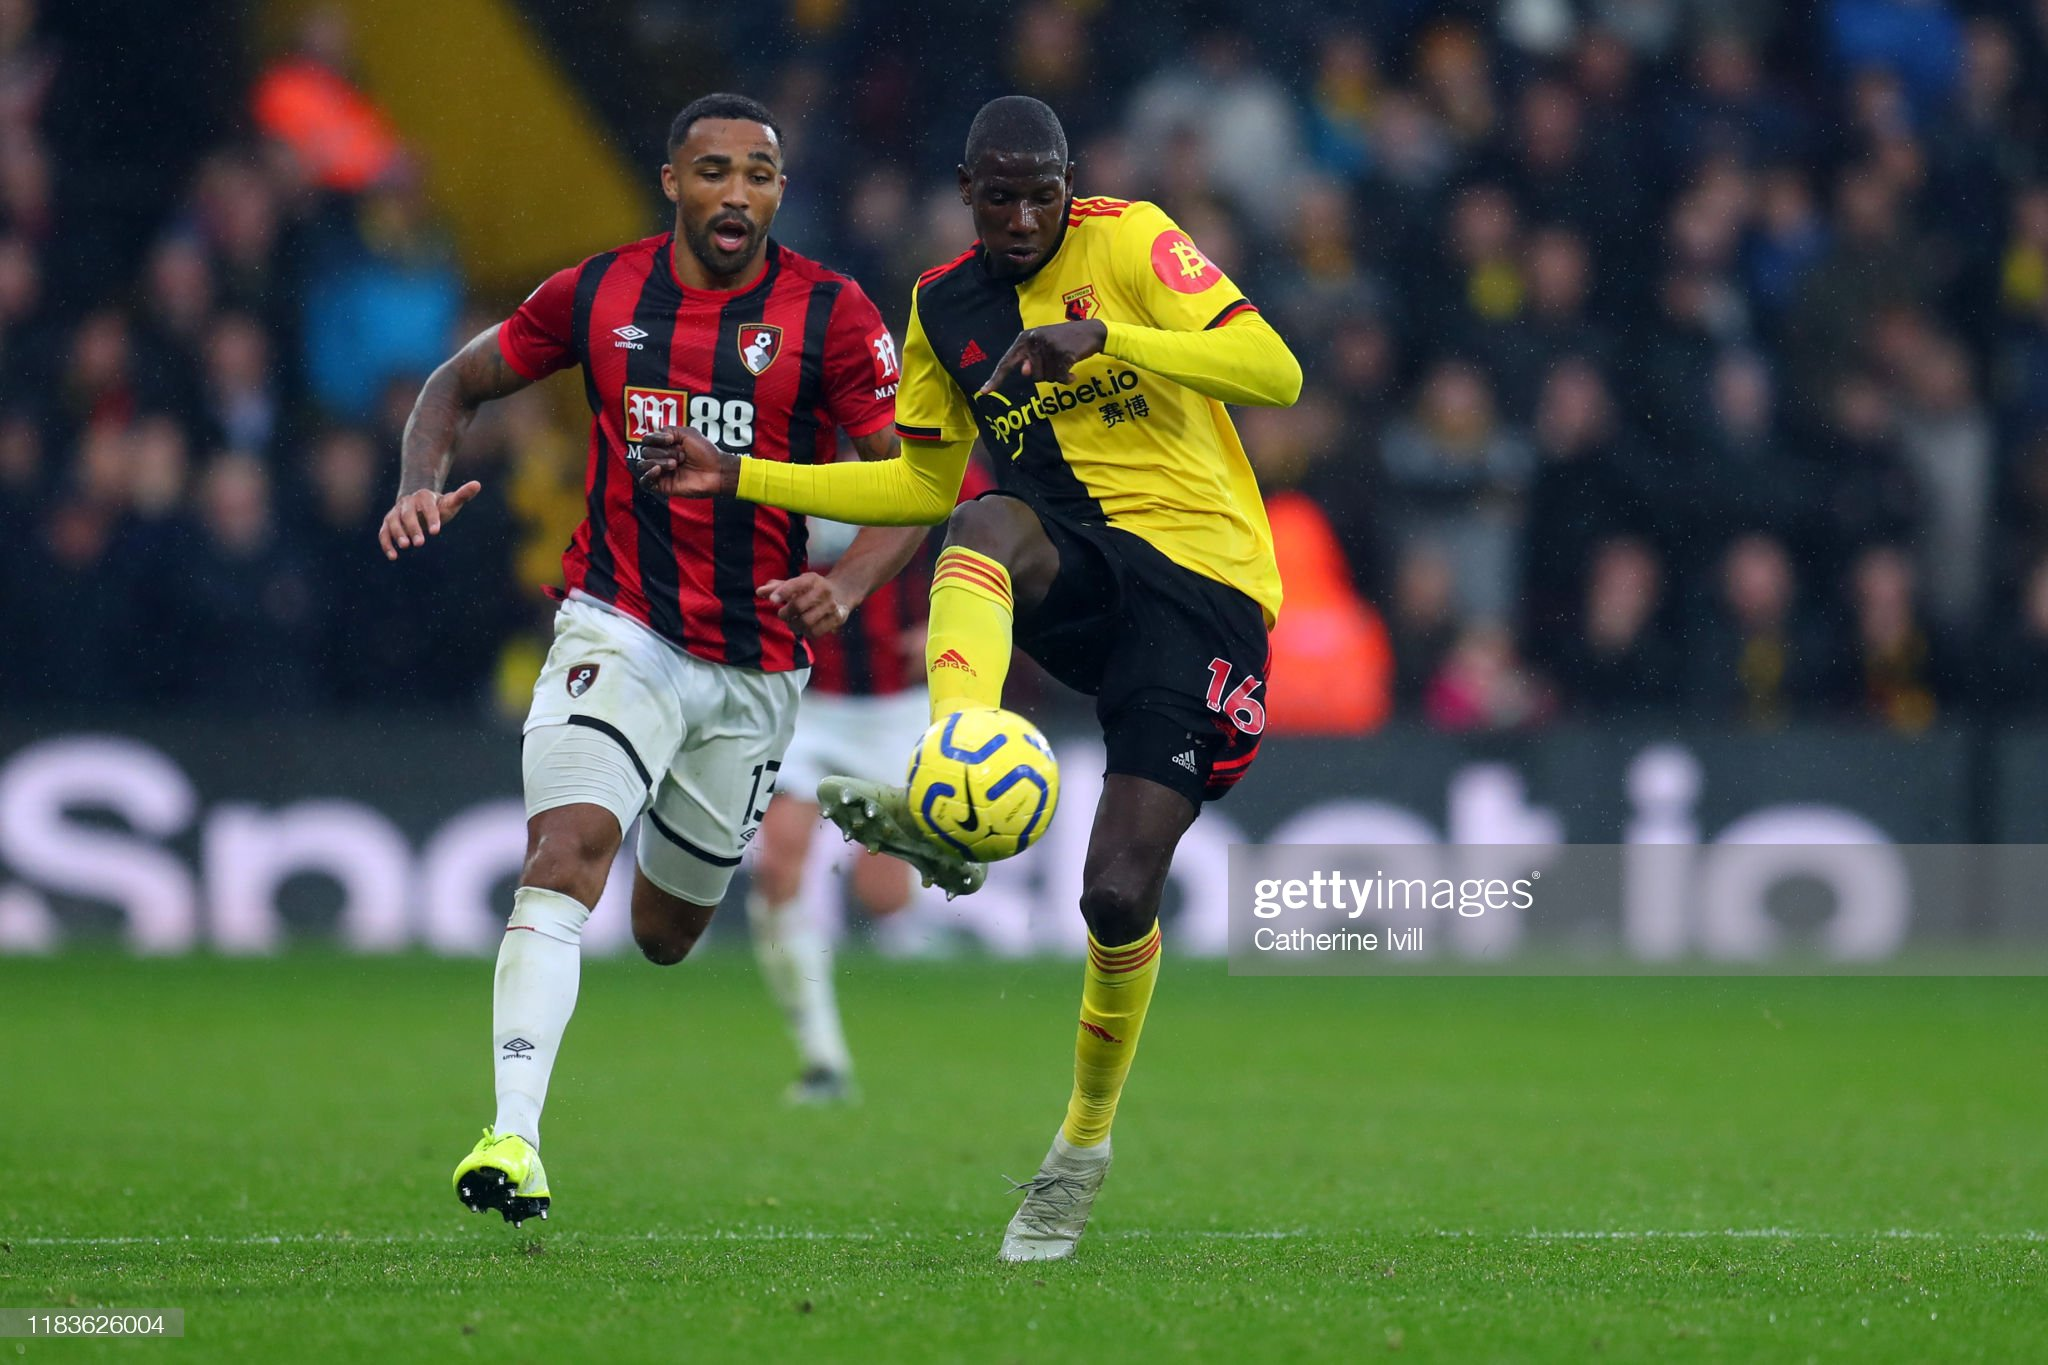 Bournemouth v Watford preview, prediction and odds